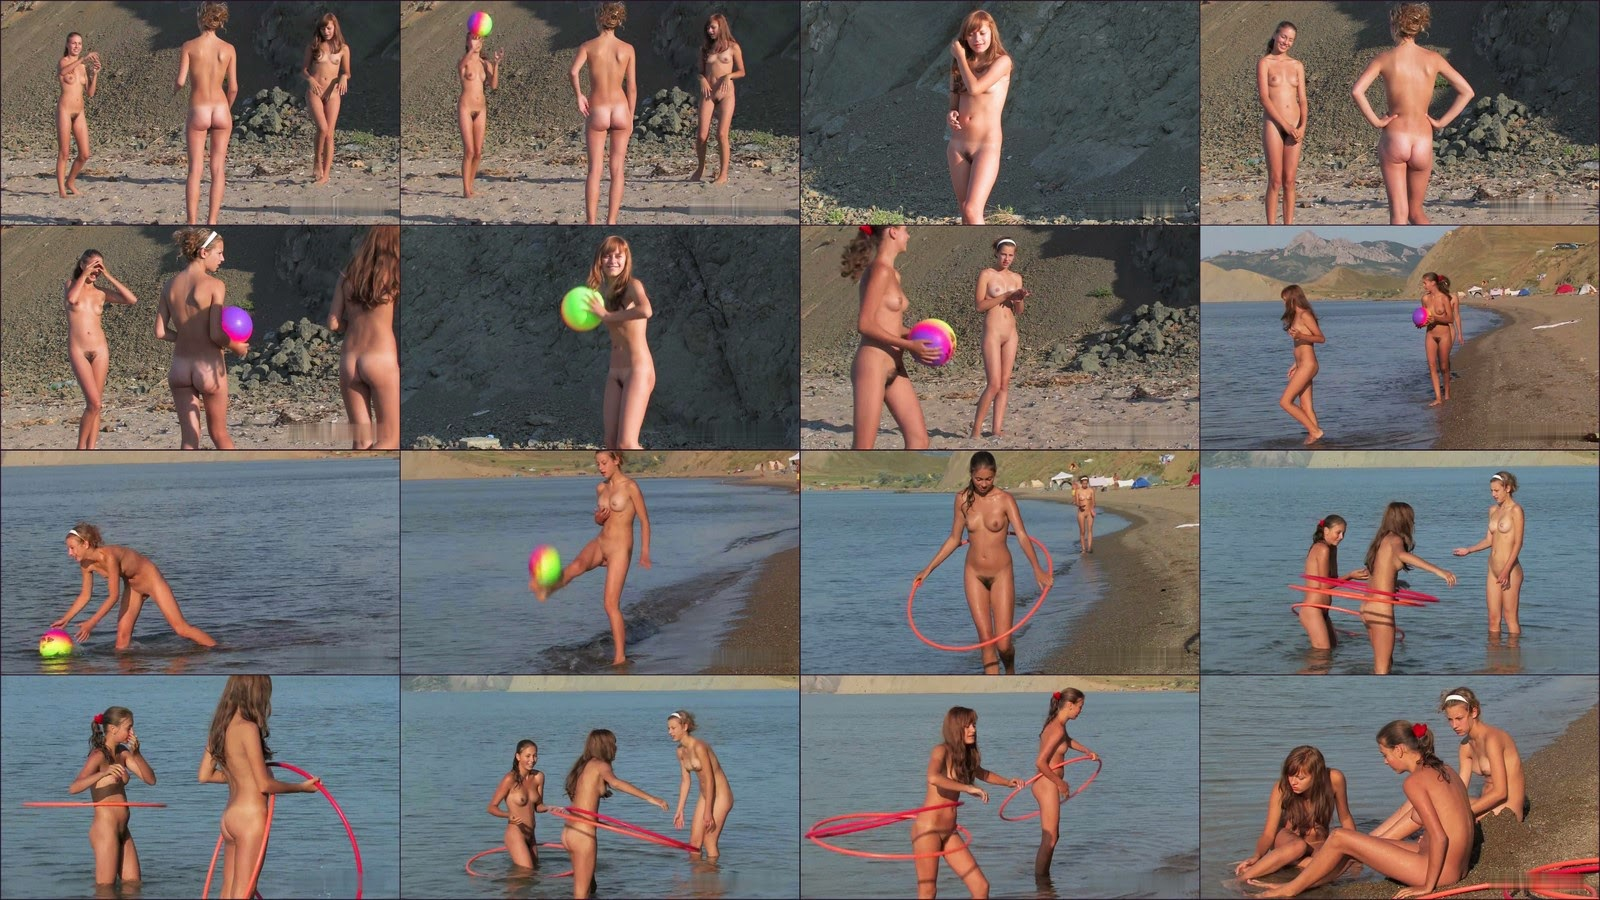 Naturist Girlfriends 2. Full version.